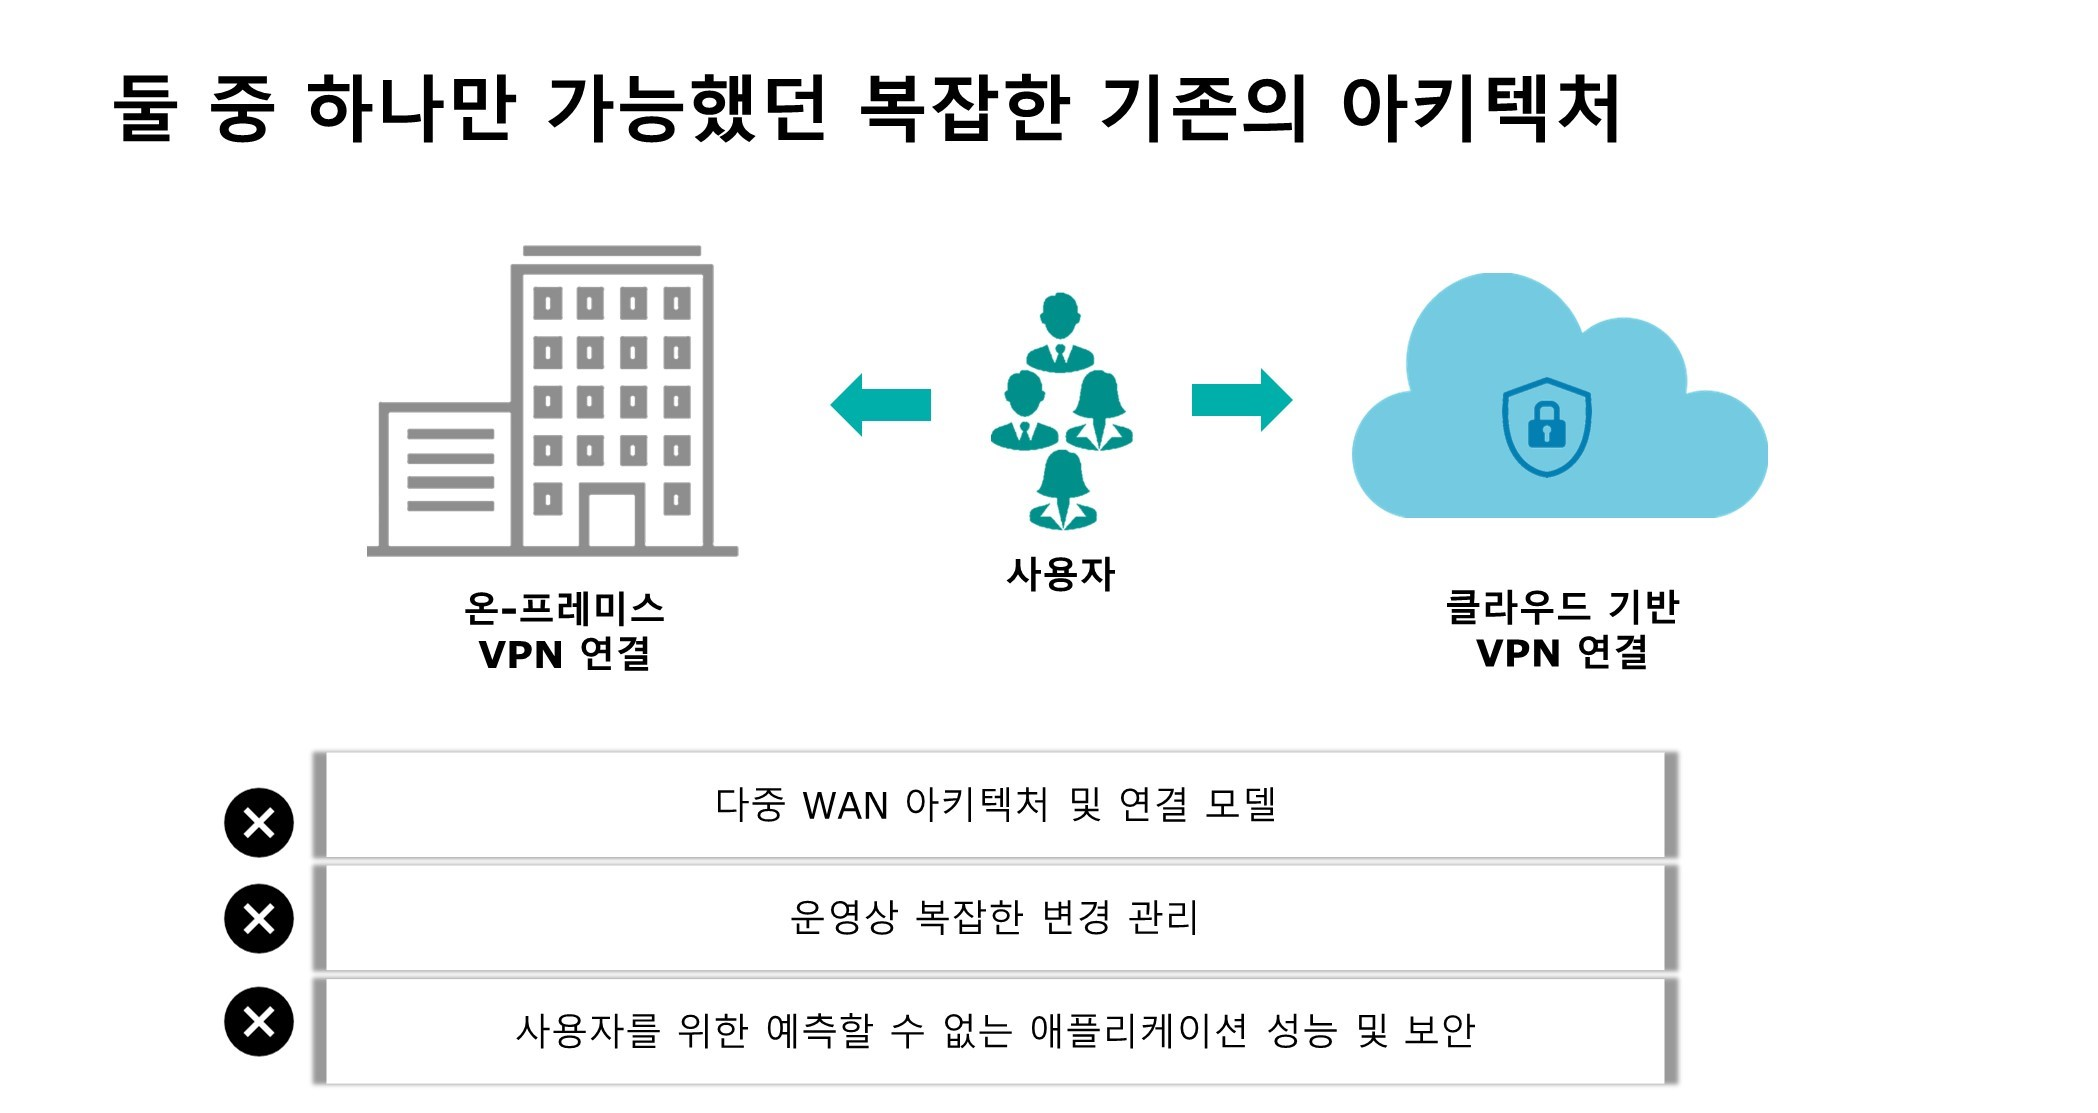 Challenges with on-premise VPN